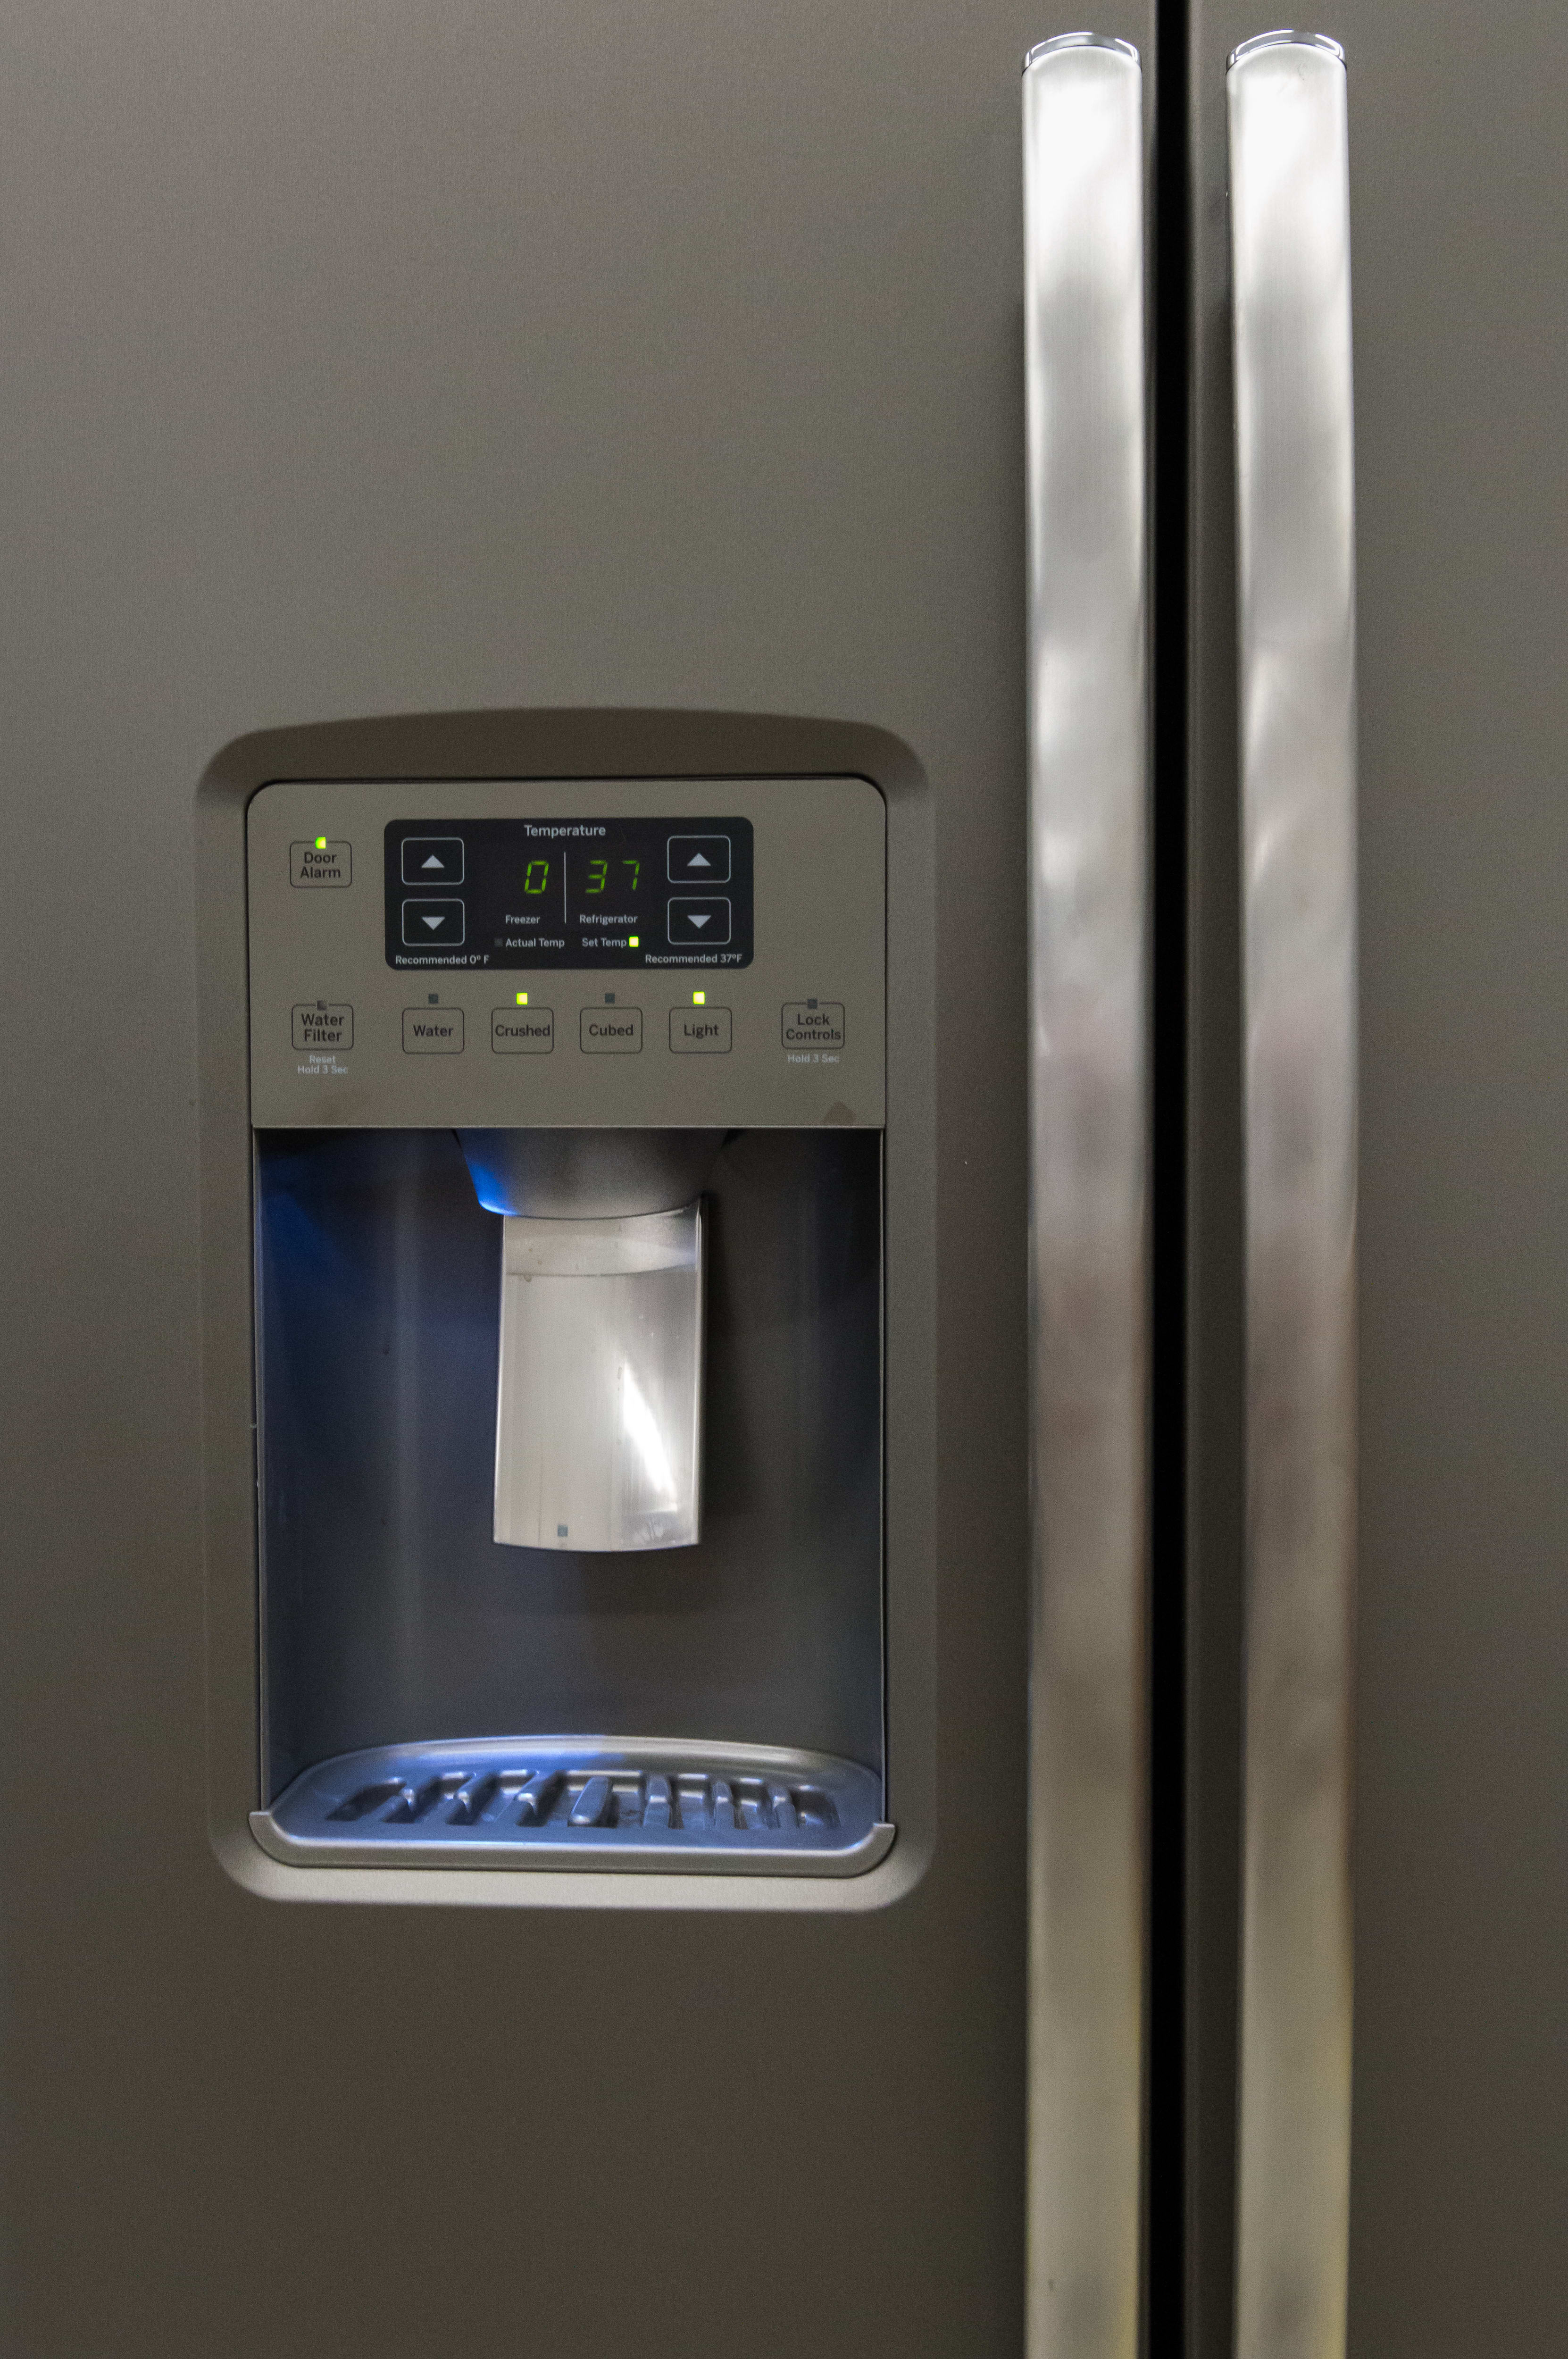 The exterior controls are clear and attractive, offering water, ice cubes and crushed ice.